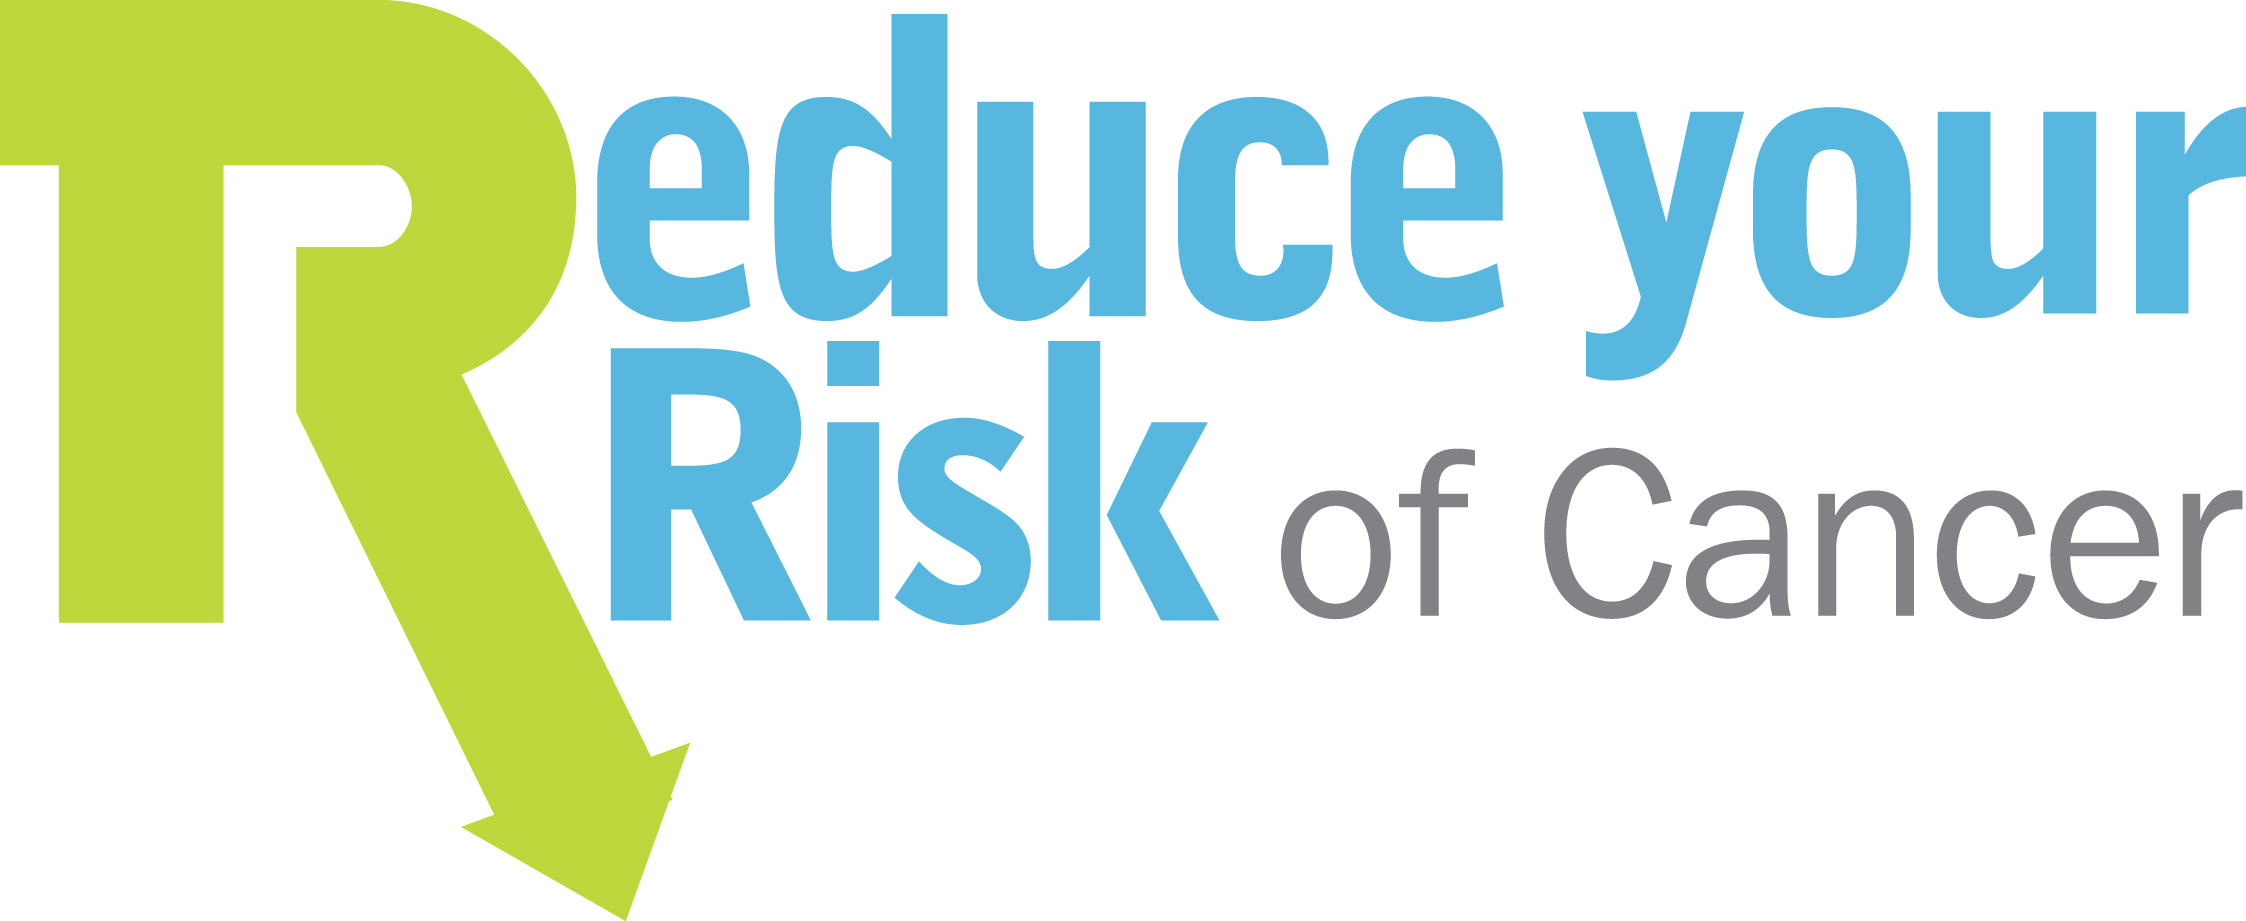 Reduce-Cancer-Risks